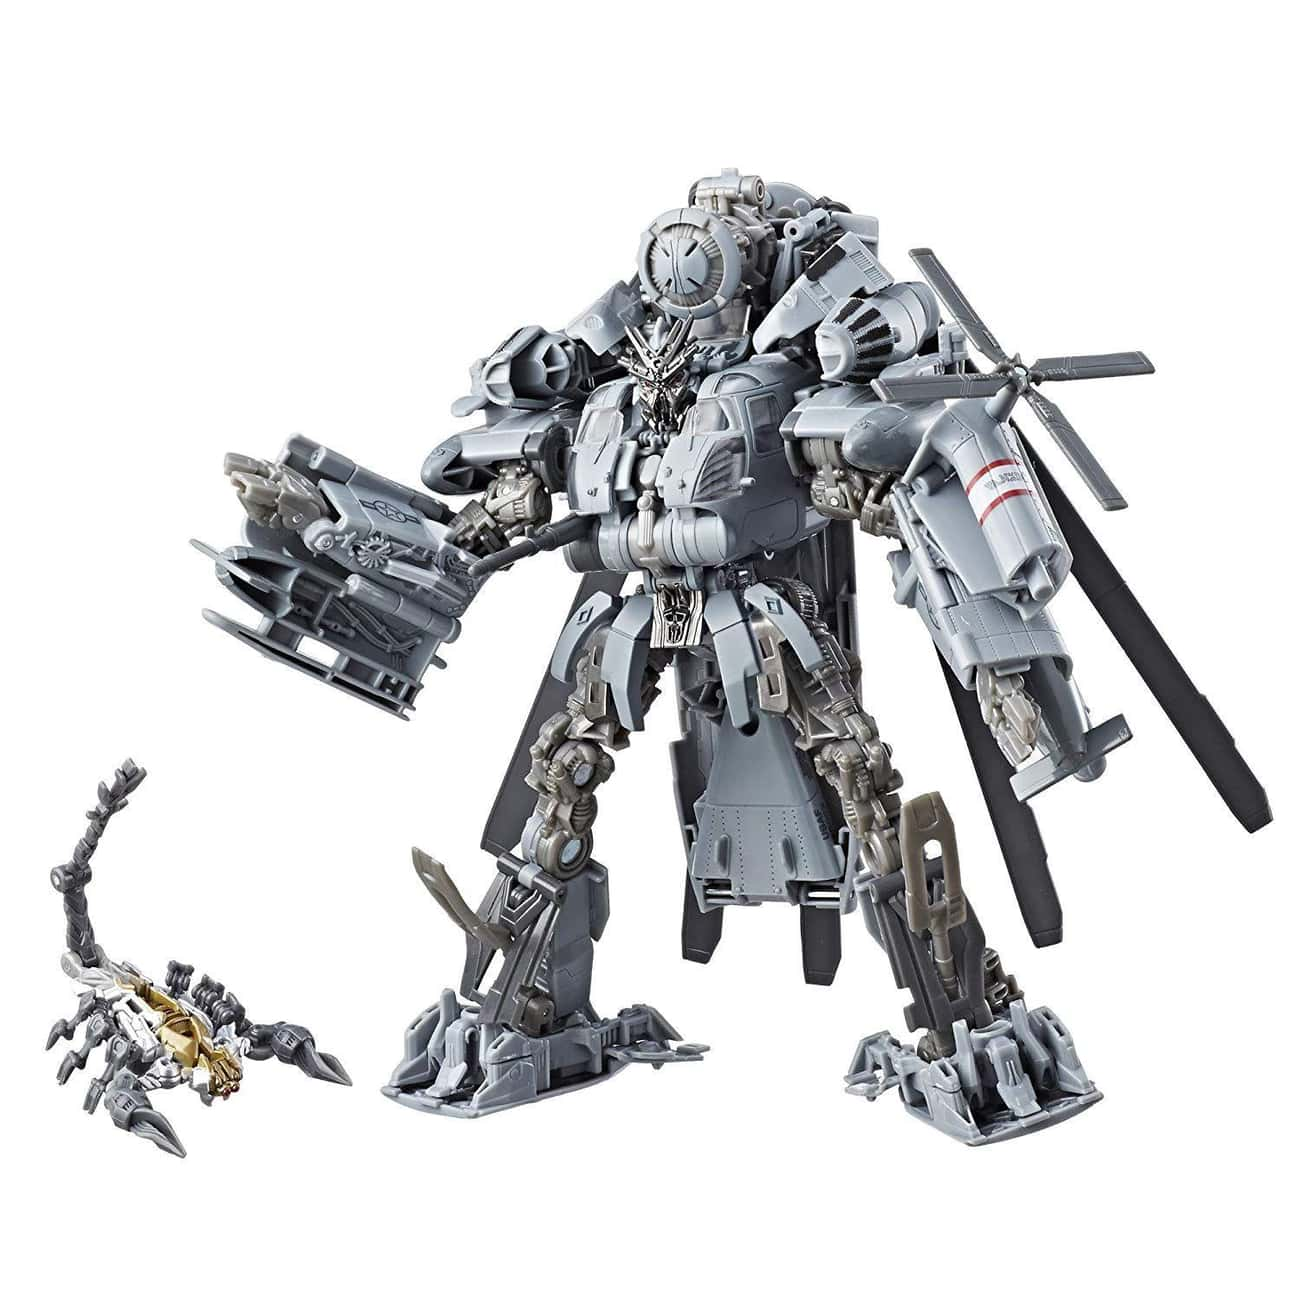 Transformers Studio Series Lea is listed (or ranked) 1 on the list The Best Transformers: Studio Series Toys, Ranked